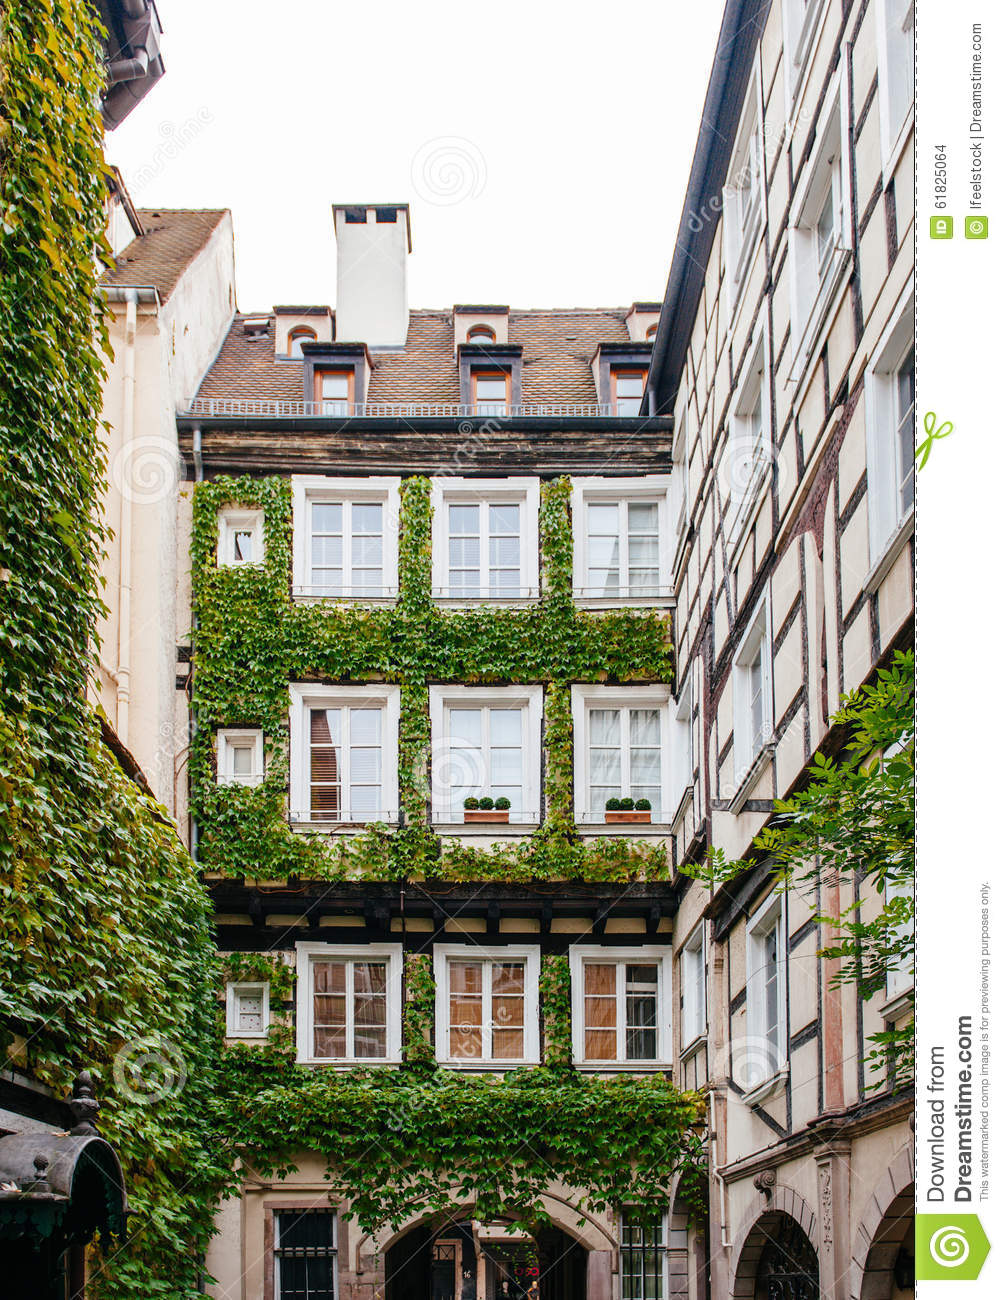 France Architecture Real Estate Investment Stock Photo